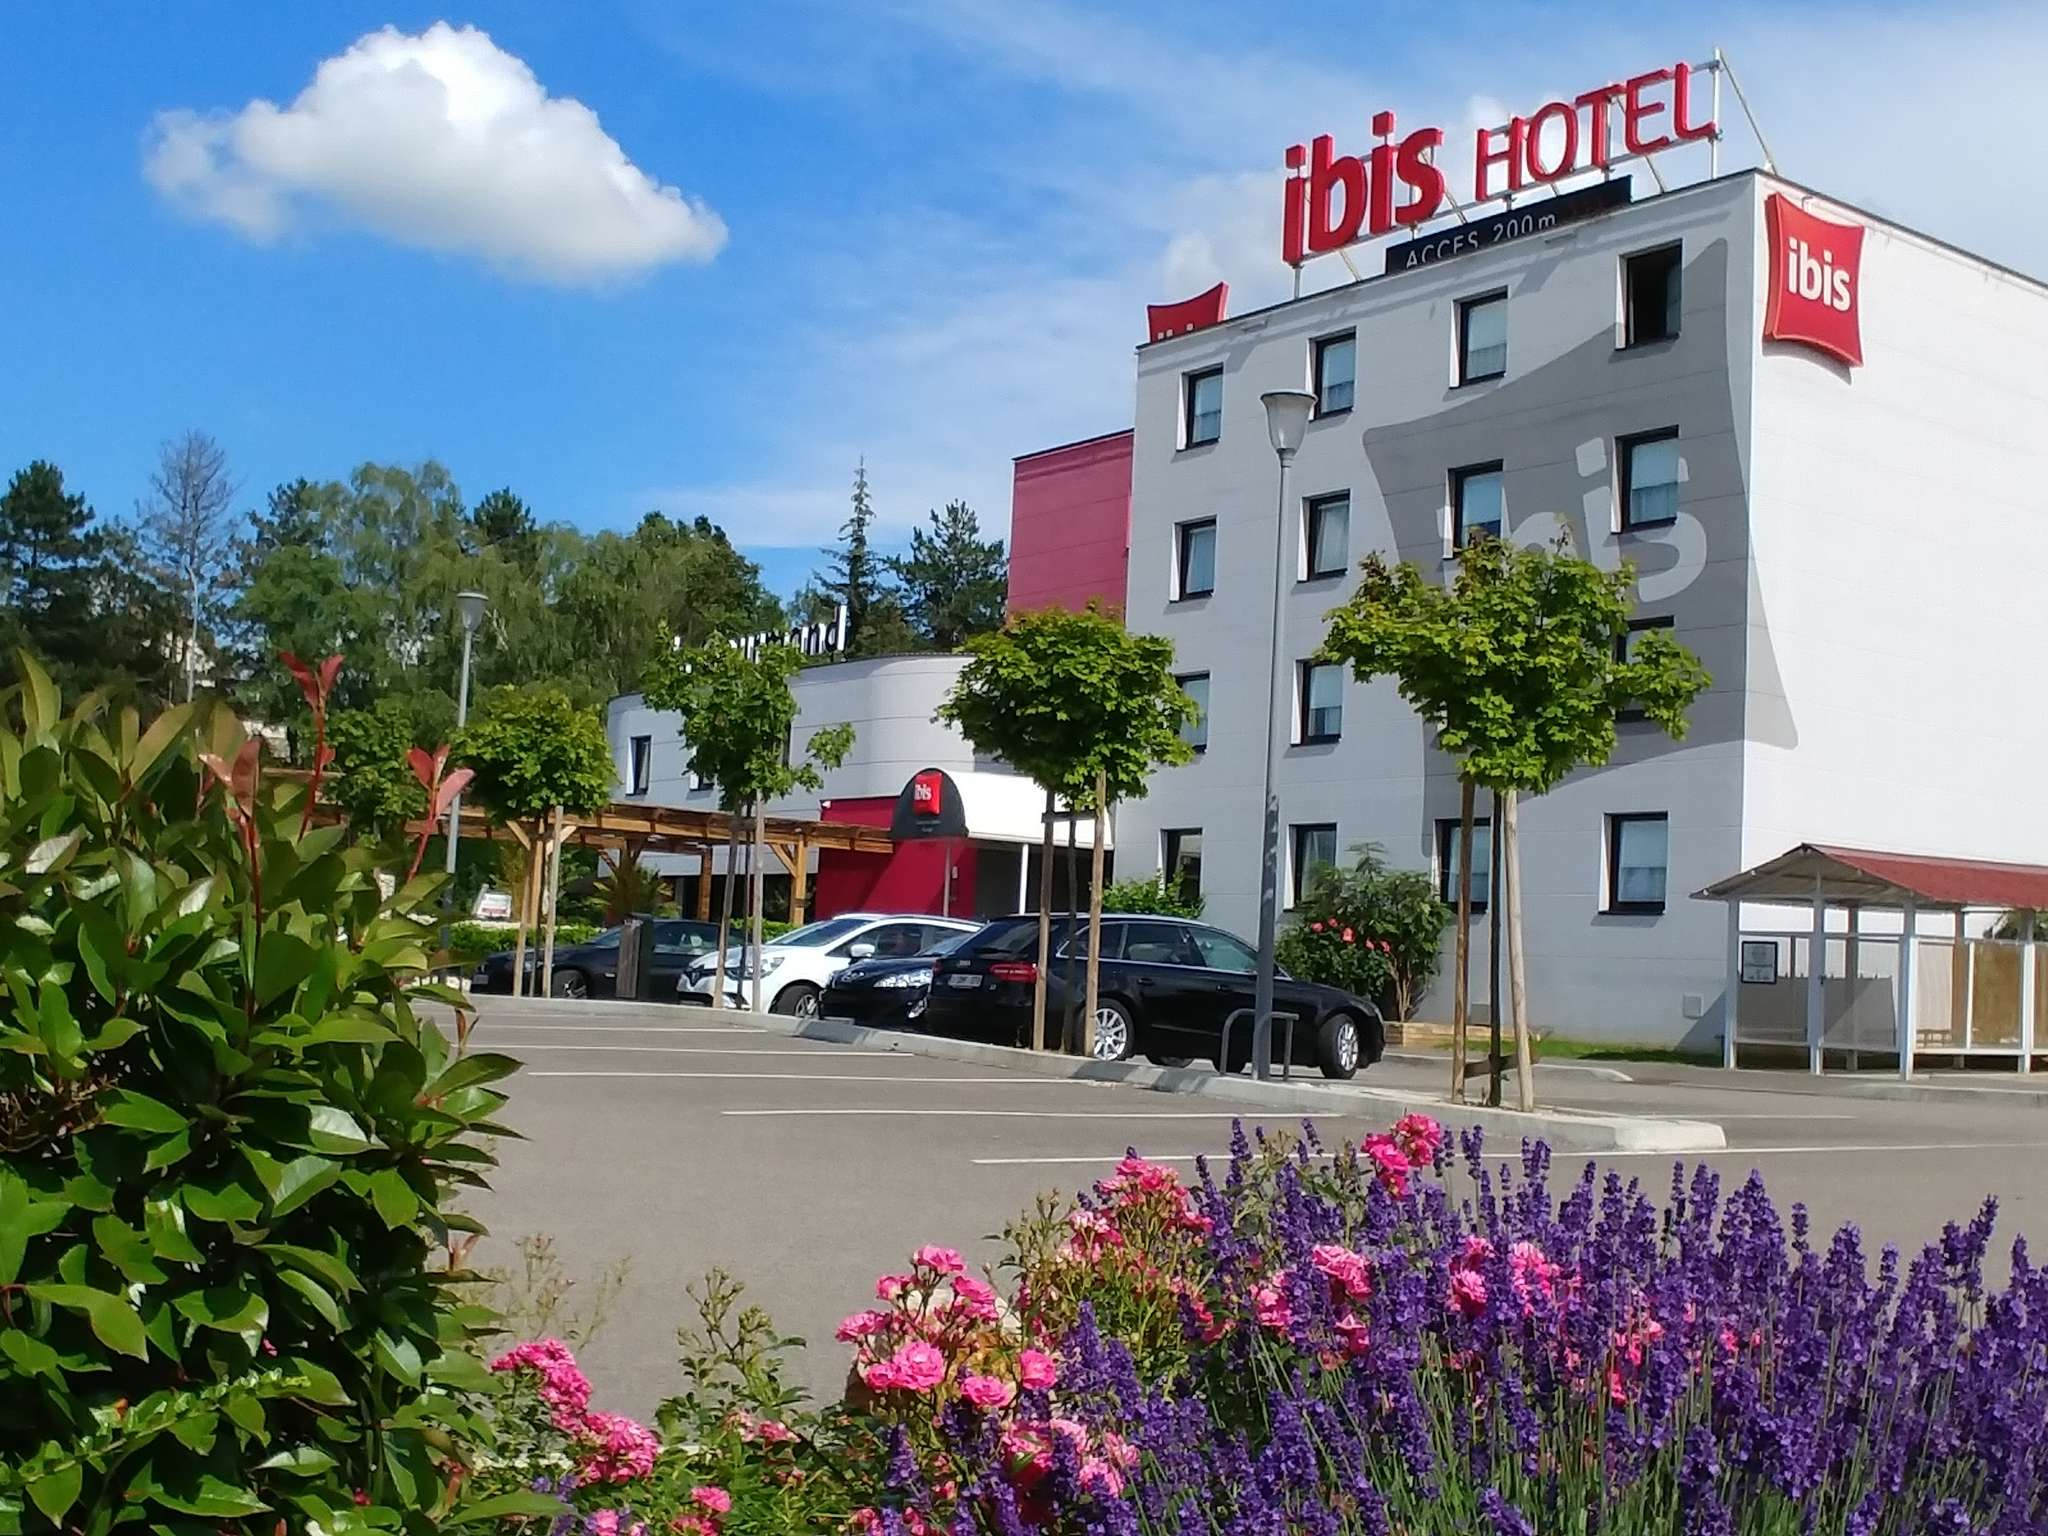 Hotel in chalon sur saone ibis chalon sur saone europe for Hotels ibis france